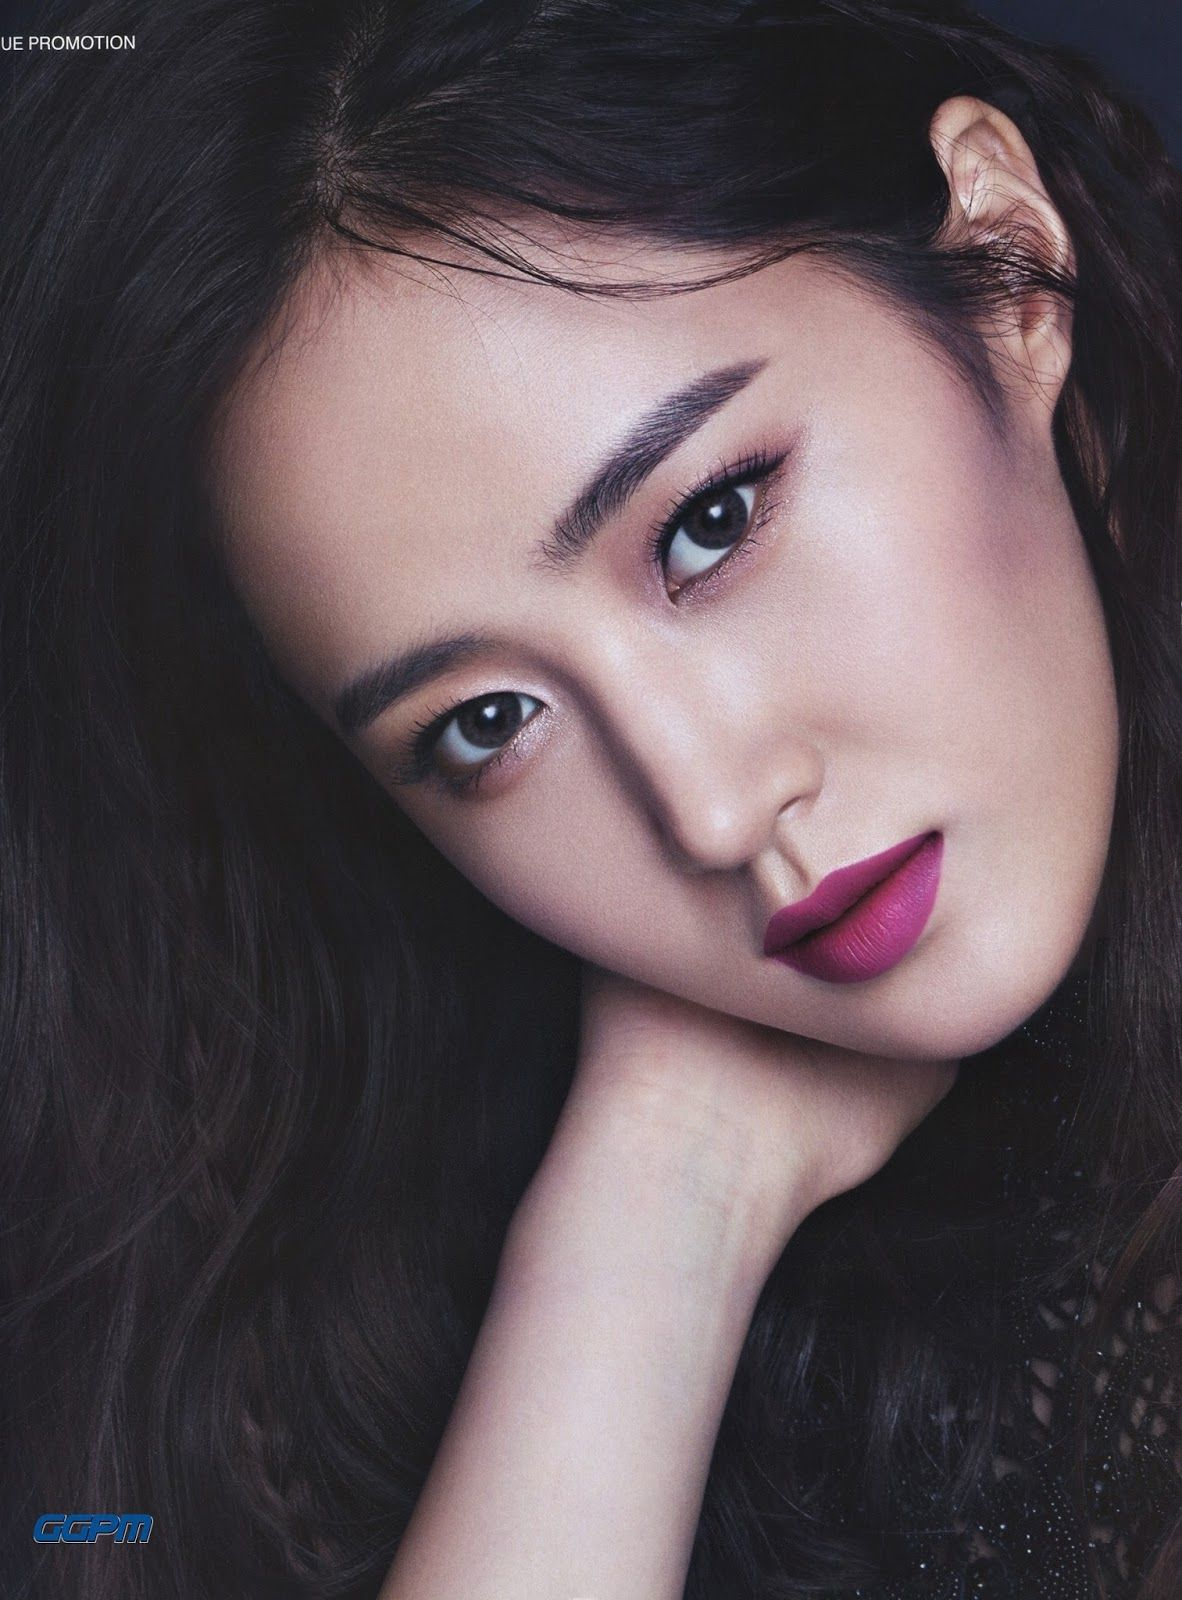 Yuri VOGUE 「NAKED TOUCH」 February.2017 - HQ SCANS (6PIC